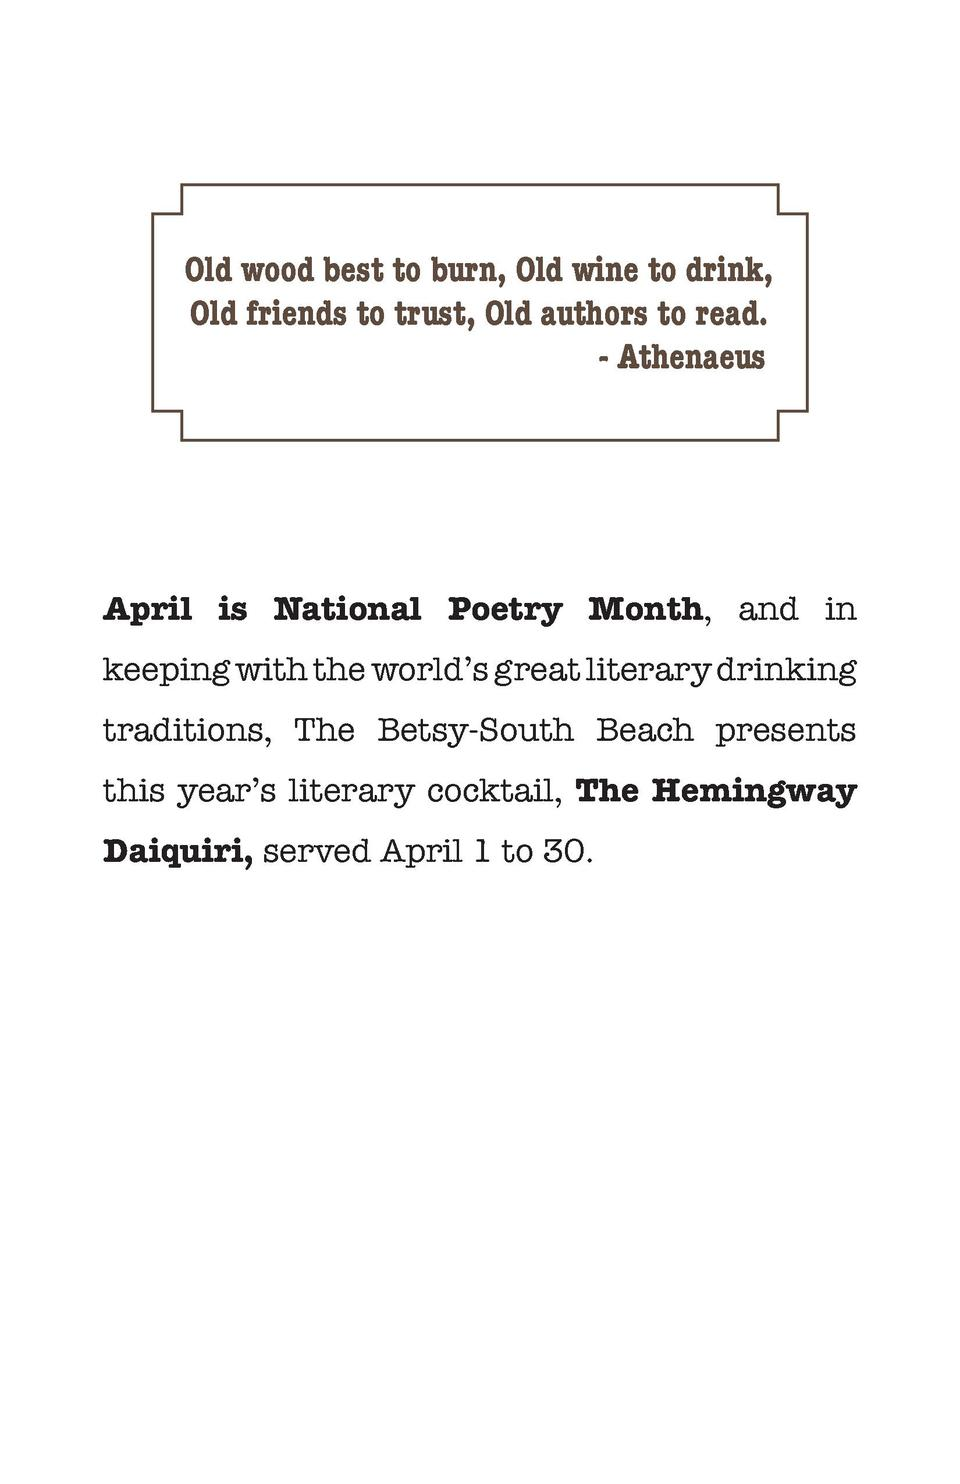 Old wood best to burn, Old wine to drink, Old friends to trust, Old authors to read. - Athenaeus  April is National Poetry...